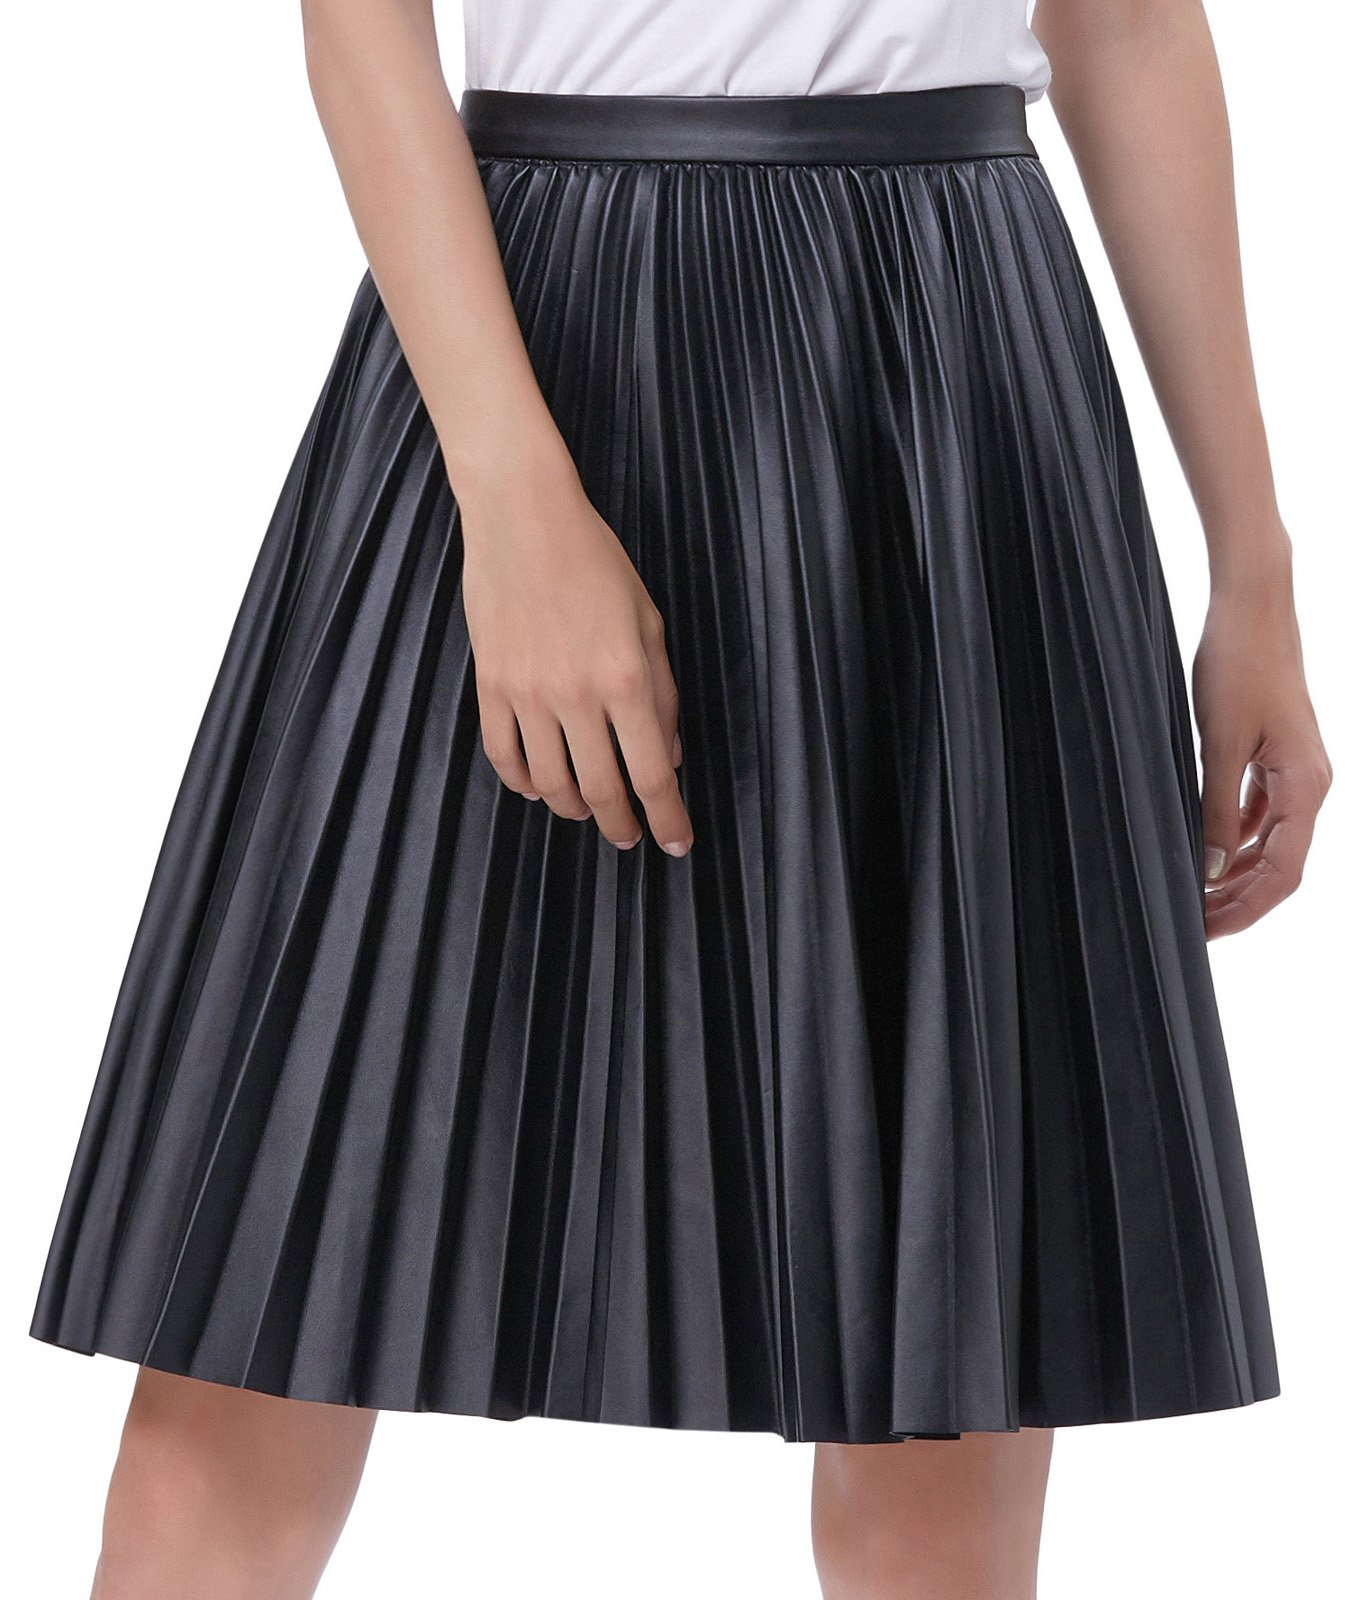 Basic A-Line Flared Pleated Midi Skirt Faux Leather Size XL Black